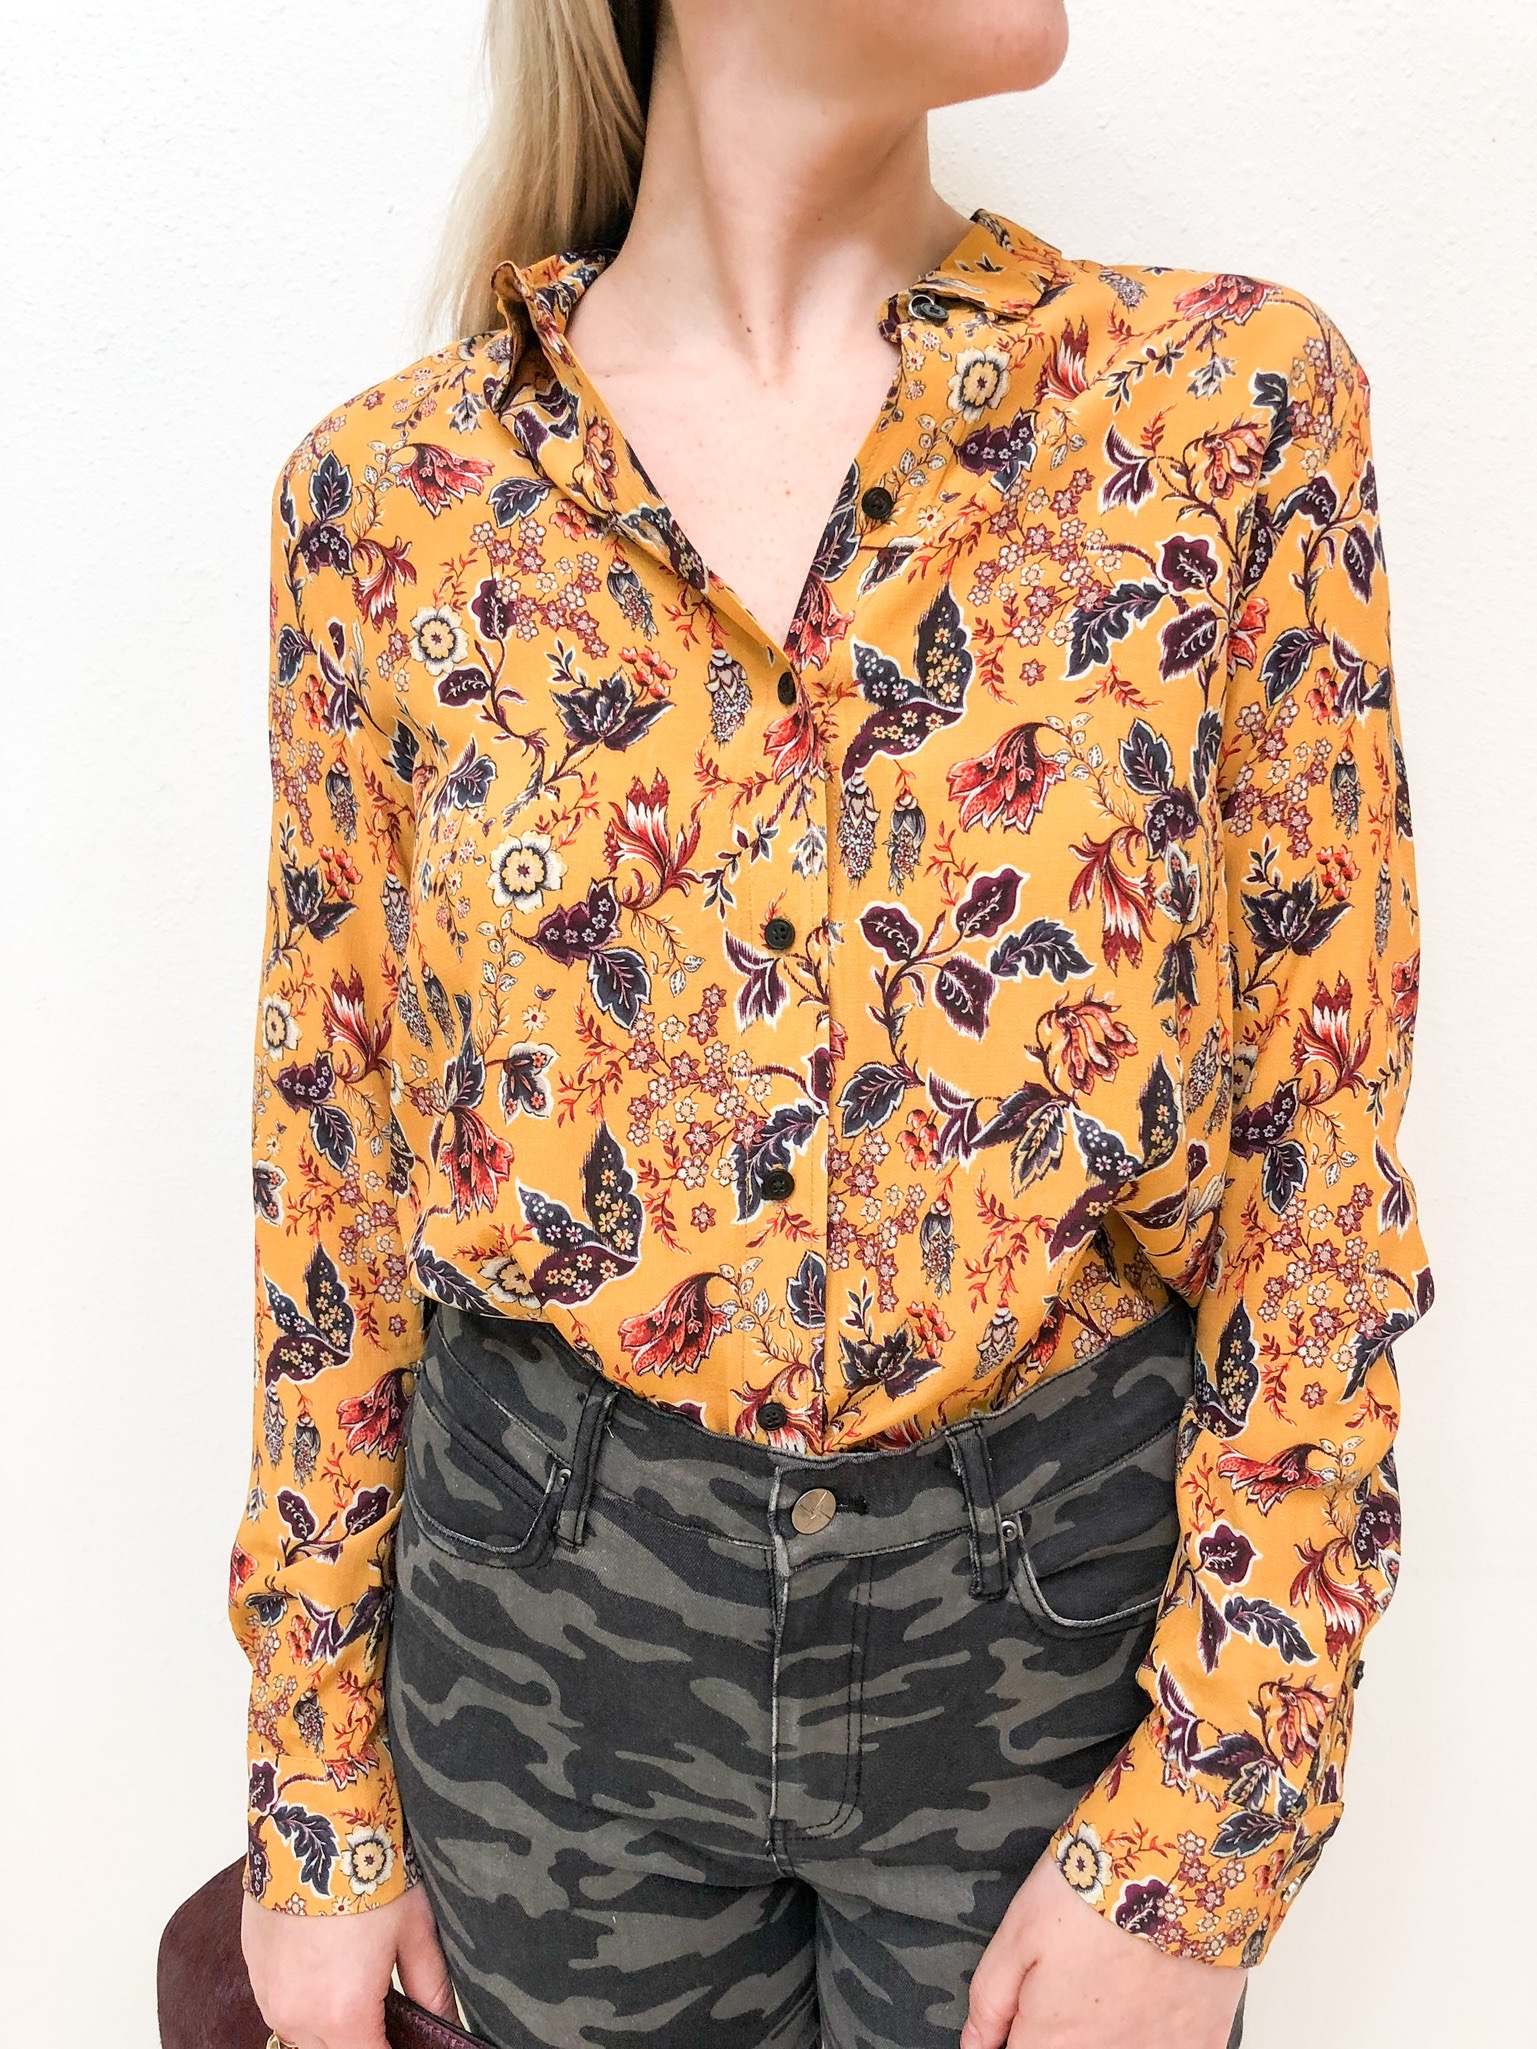 Third Look: - Third Look: Vintage inspired everything is a huge player this season. This marigold and fall foliage print is like autumn in a blouse.